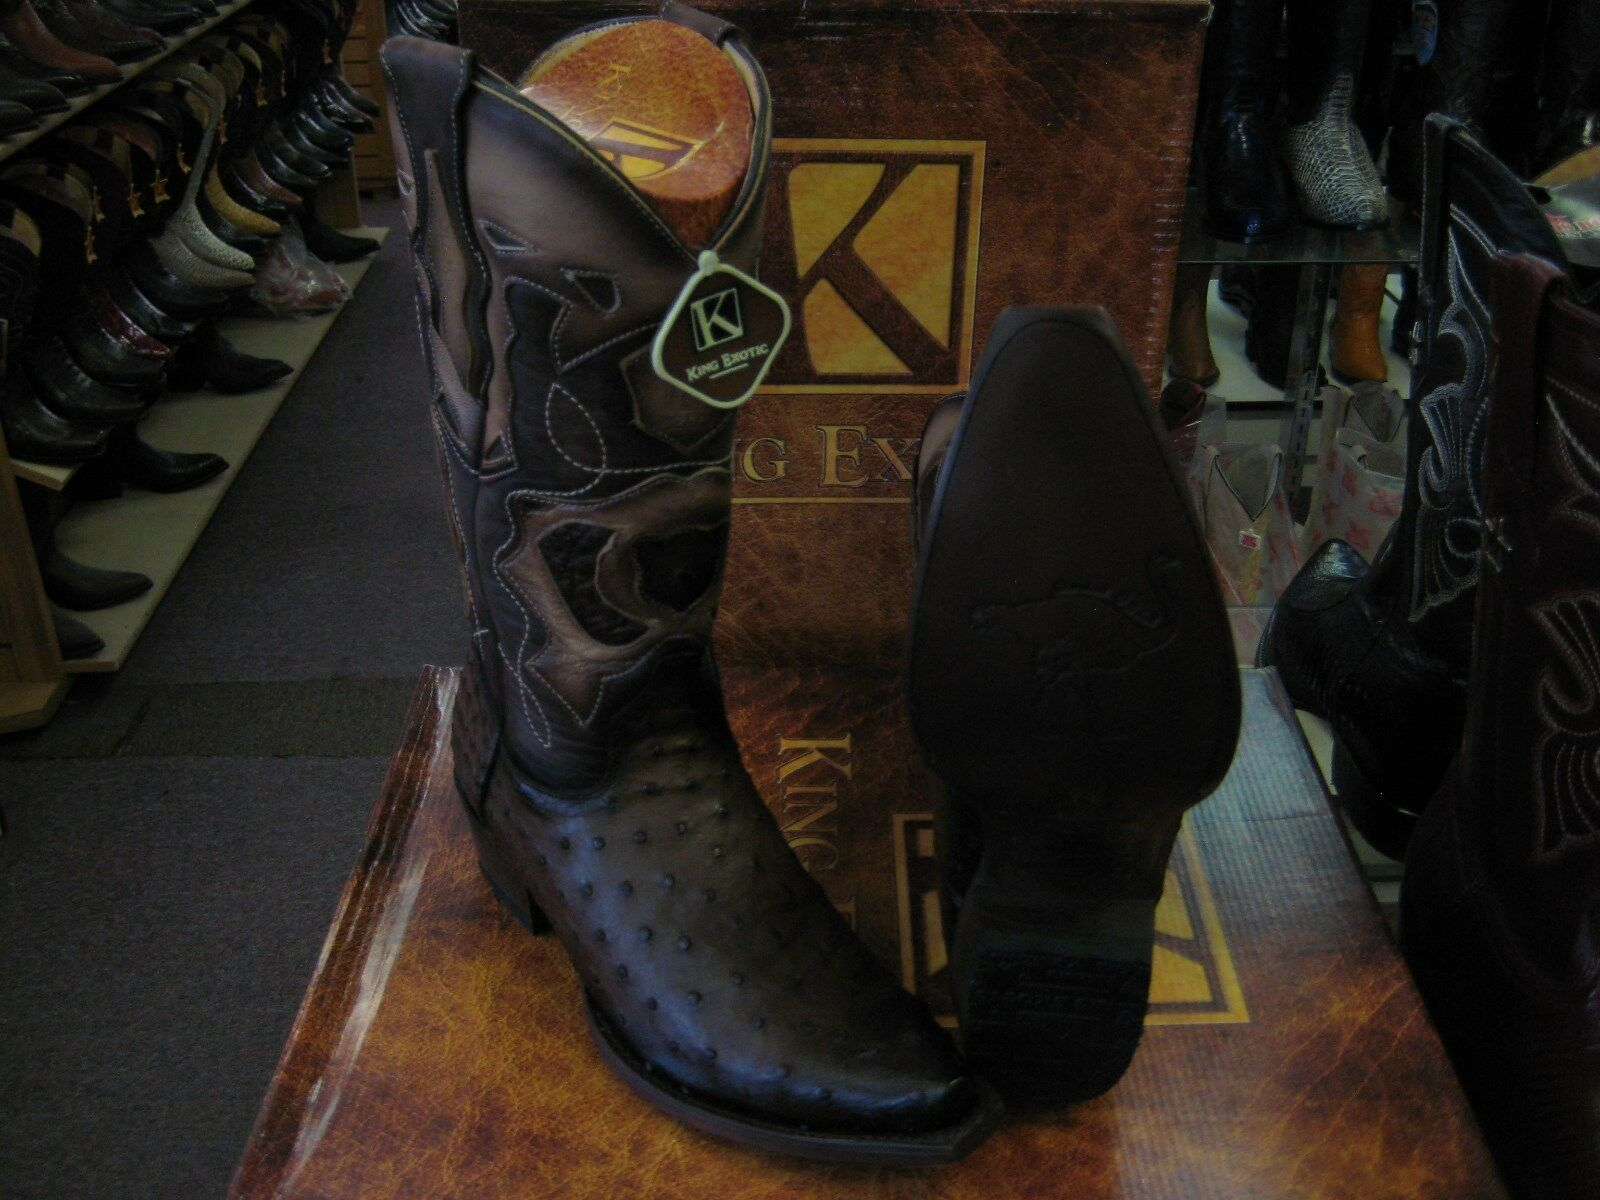 KING EXOTIC BROWN SNIP TOE GENUINE OSTRICH WESTERN COWBOY BOOT EE+ 94R0316